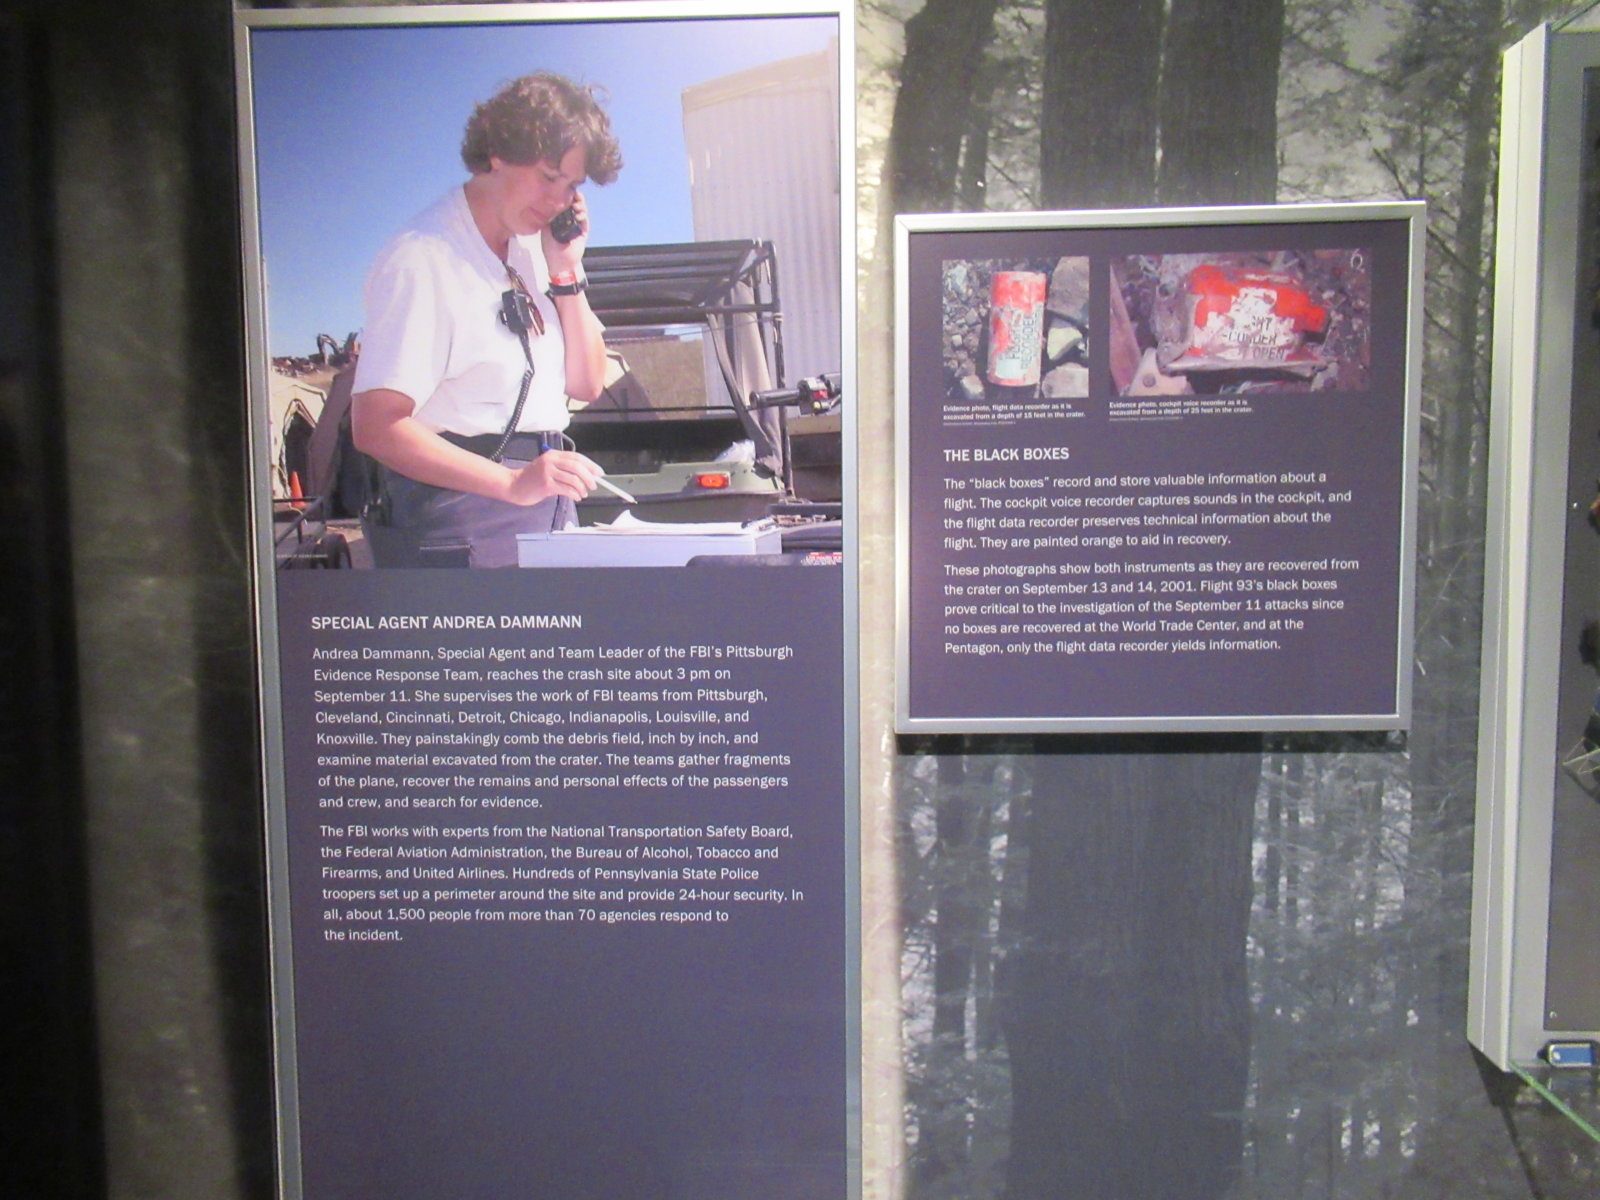 07-13 Flight 93 The Black Box Recorder